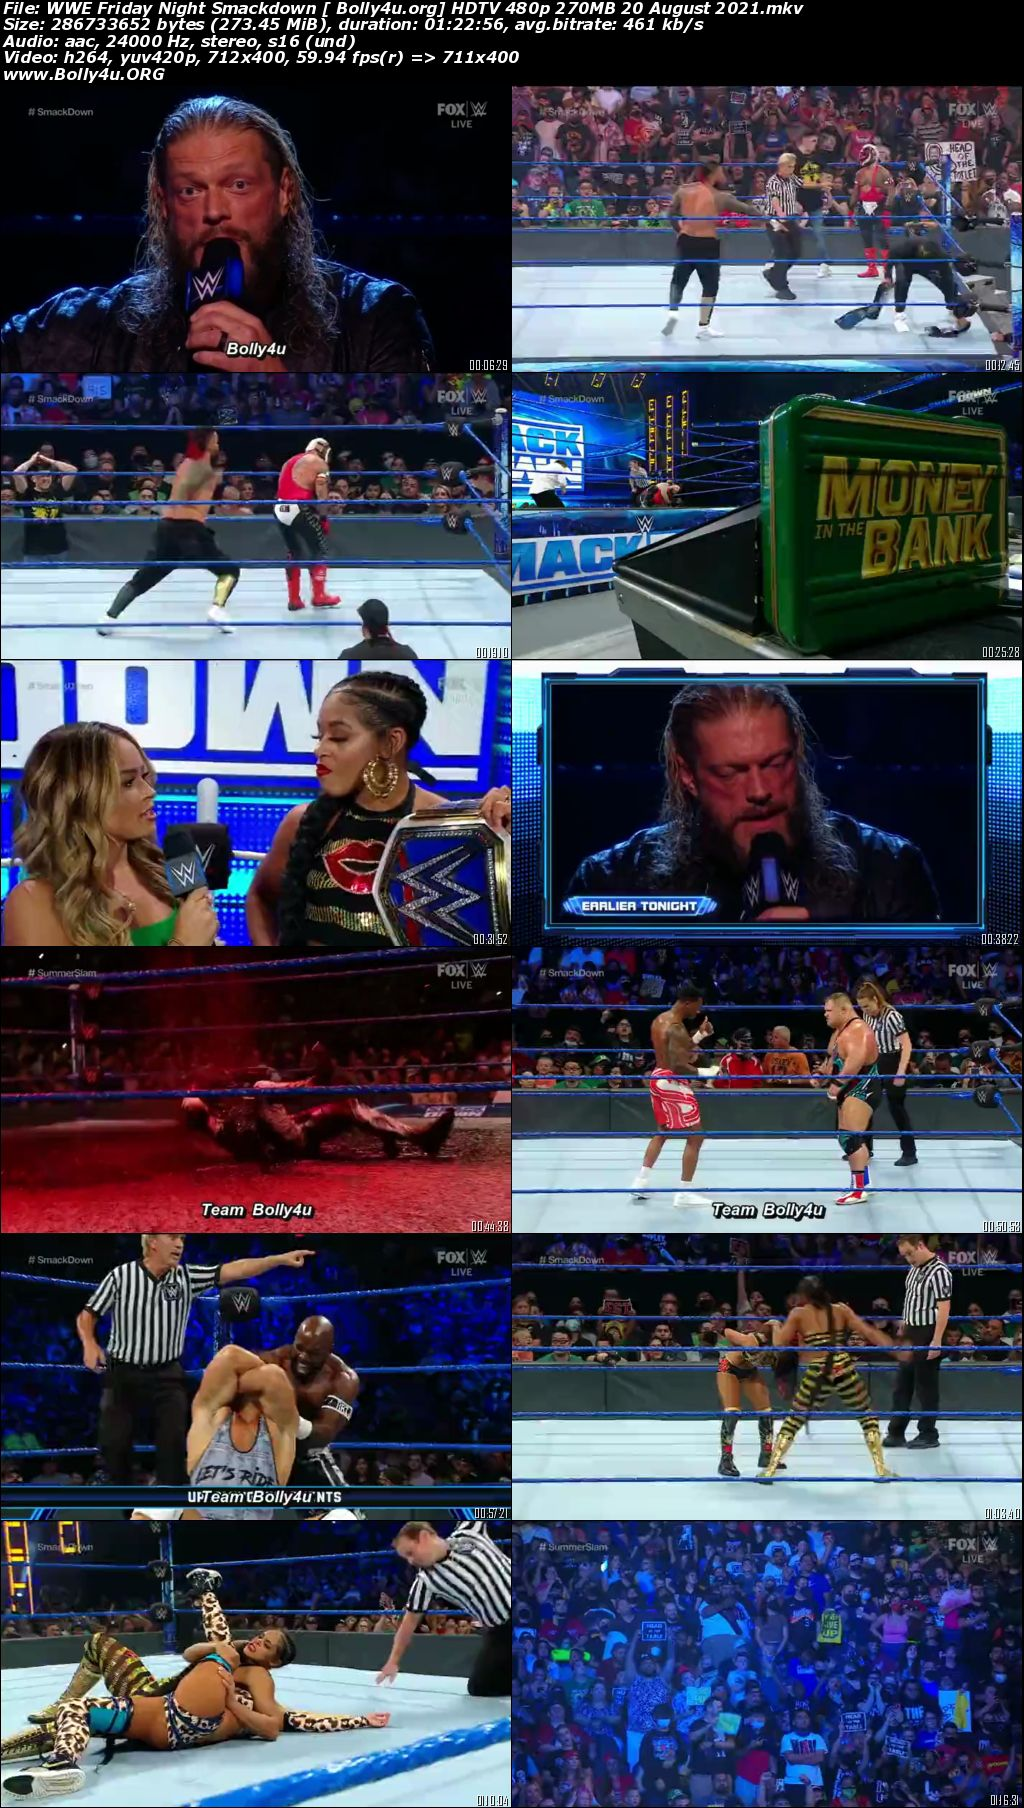 WWE Friday Night Smackdown HDTV 480p 270MB 20 August 2021 Download